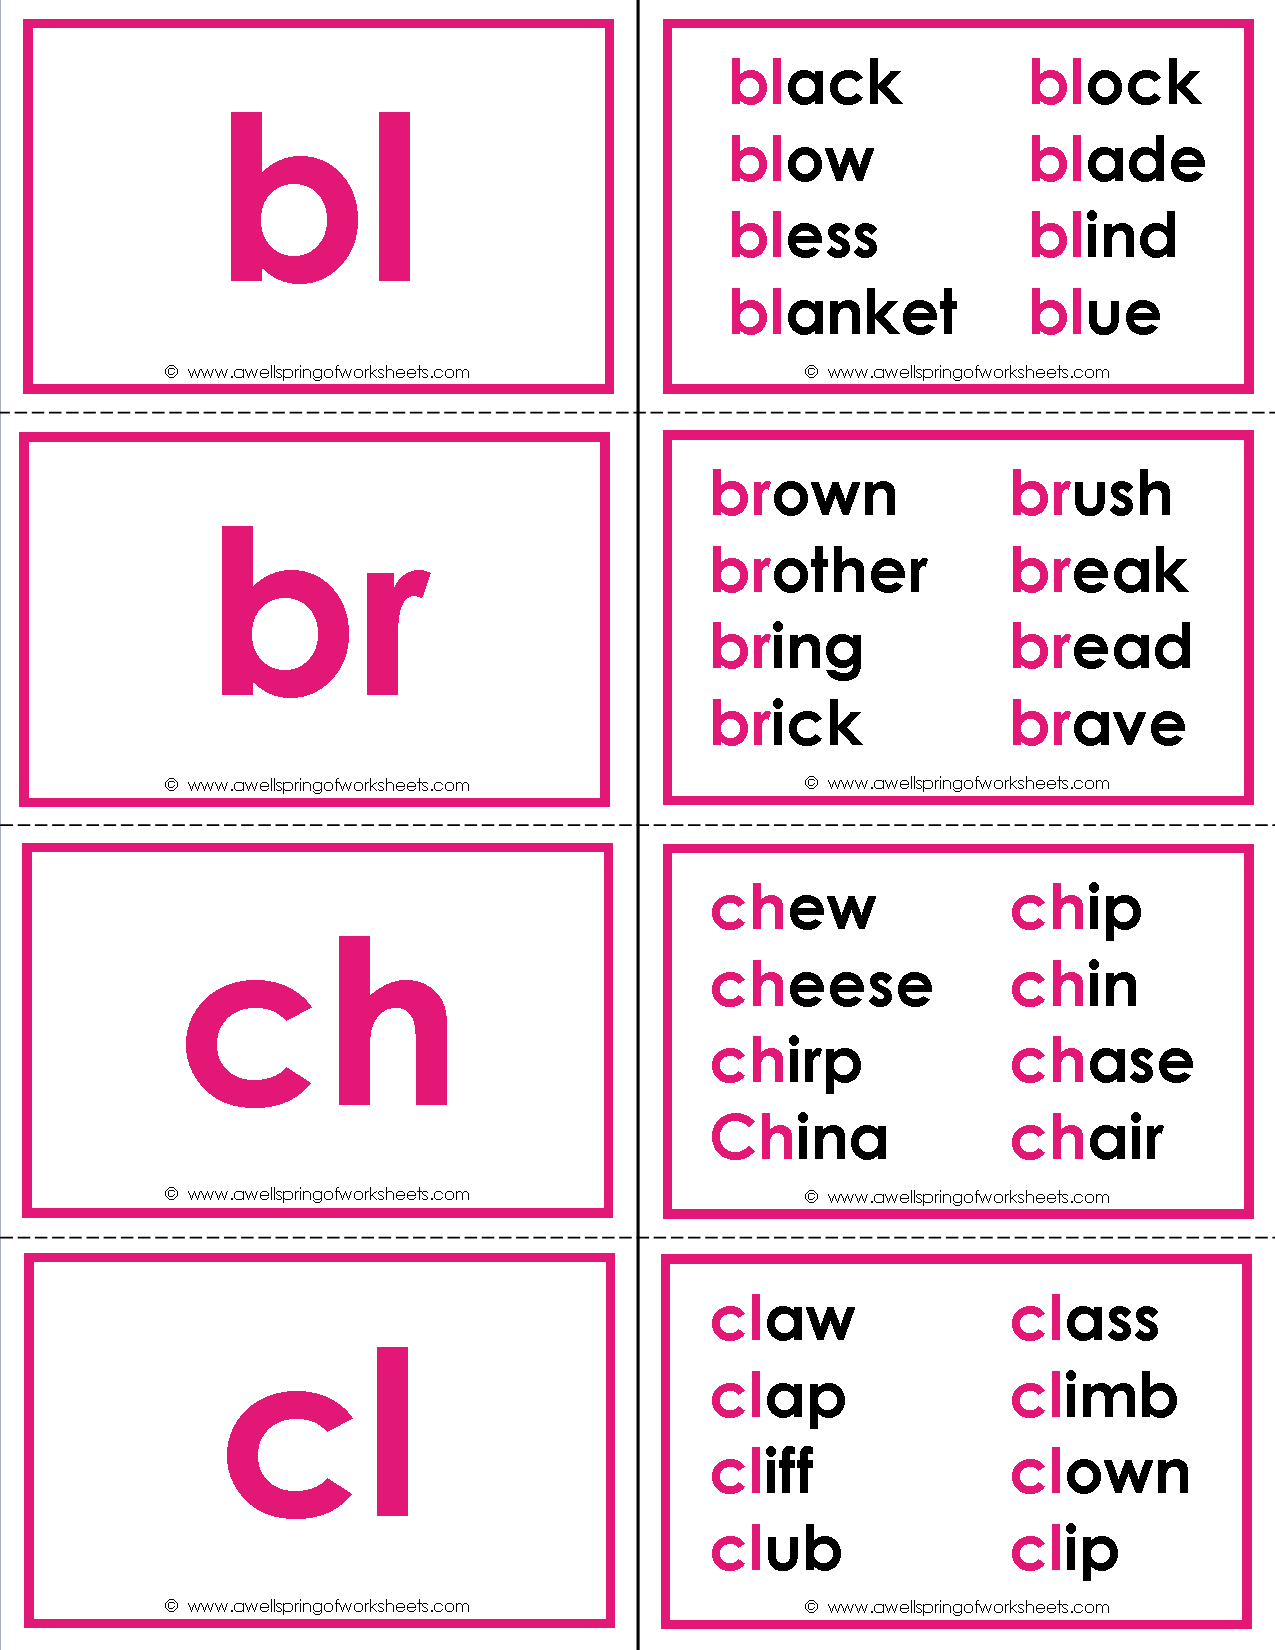 Beginning Consonant Blends Flash Cards with a special bonus! These flash cards have up to 8 words that start with each blend for extra practice. Use as flash cards or a memory game.